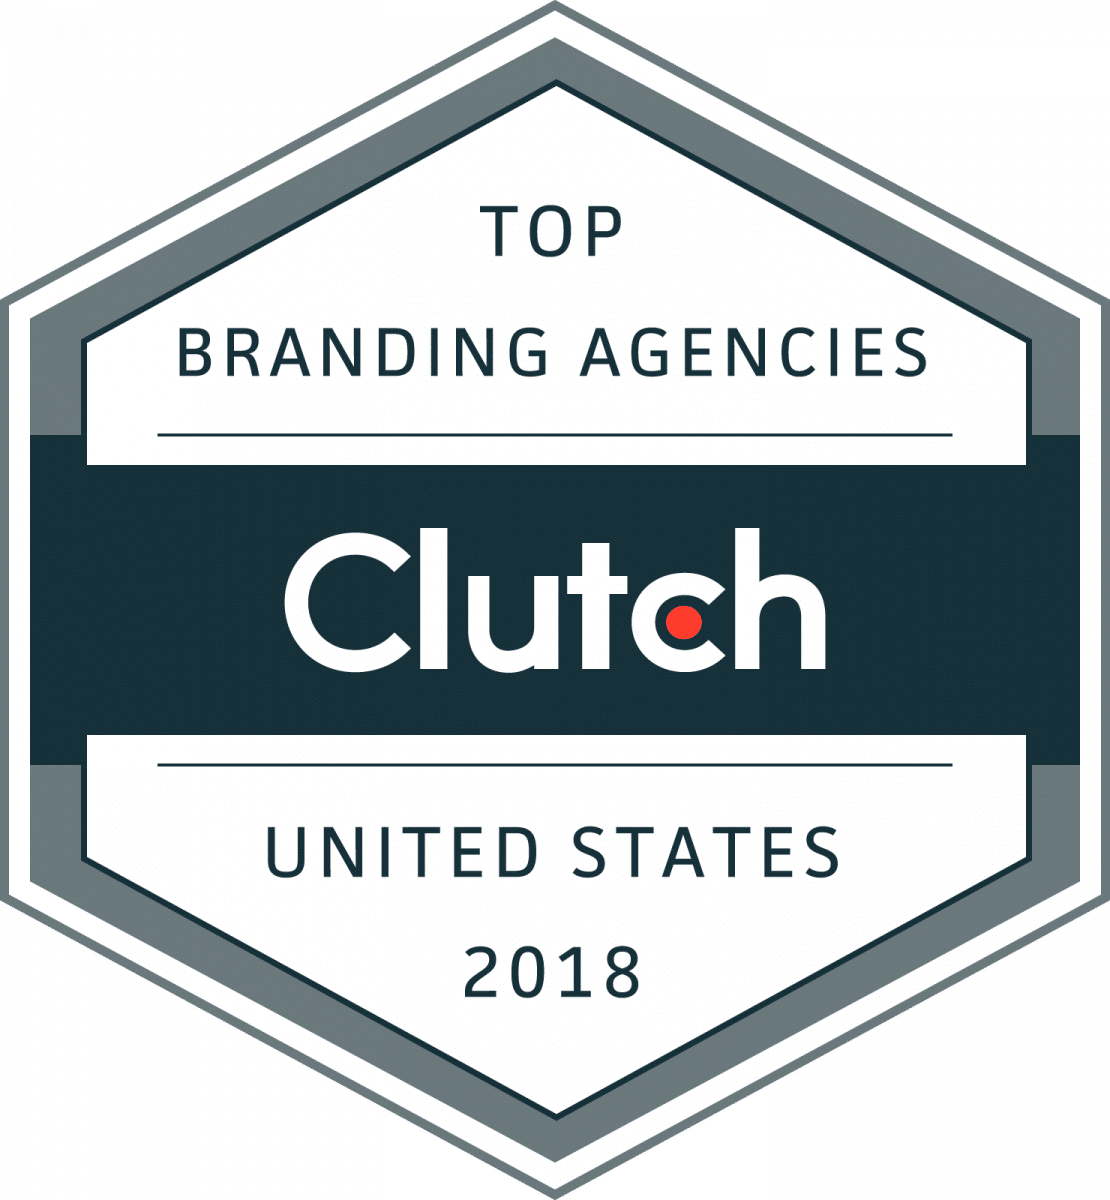 2018 Top Branding Agencies